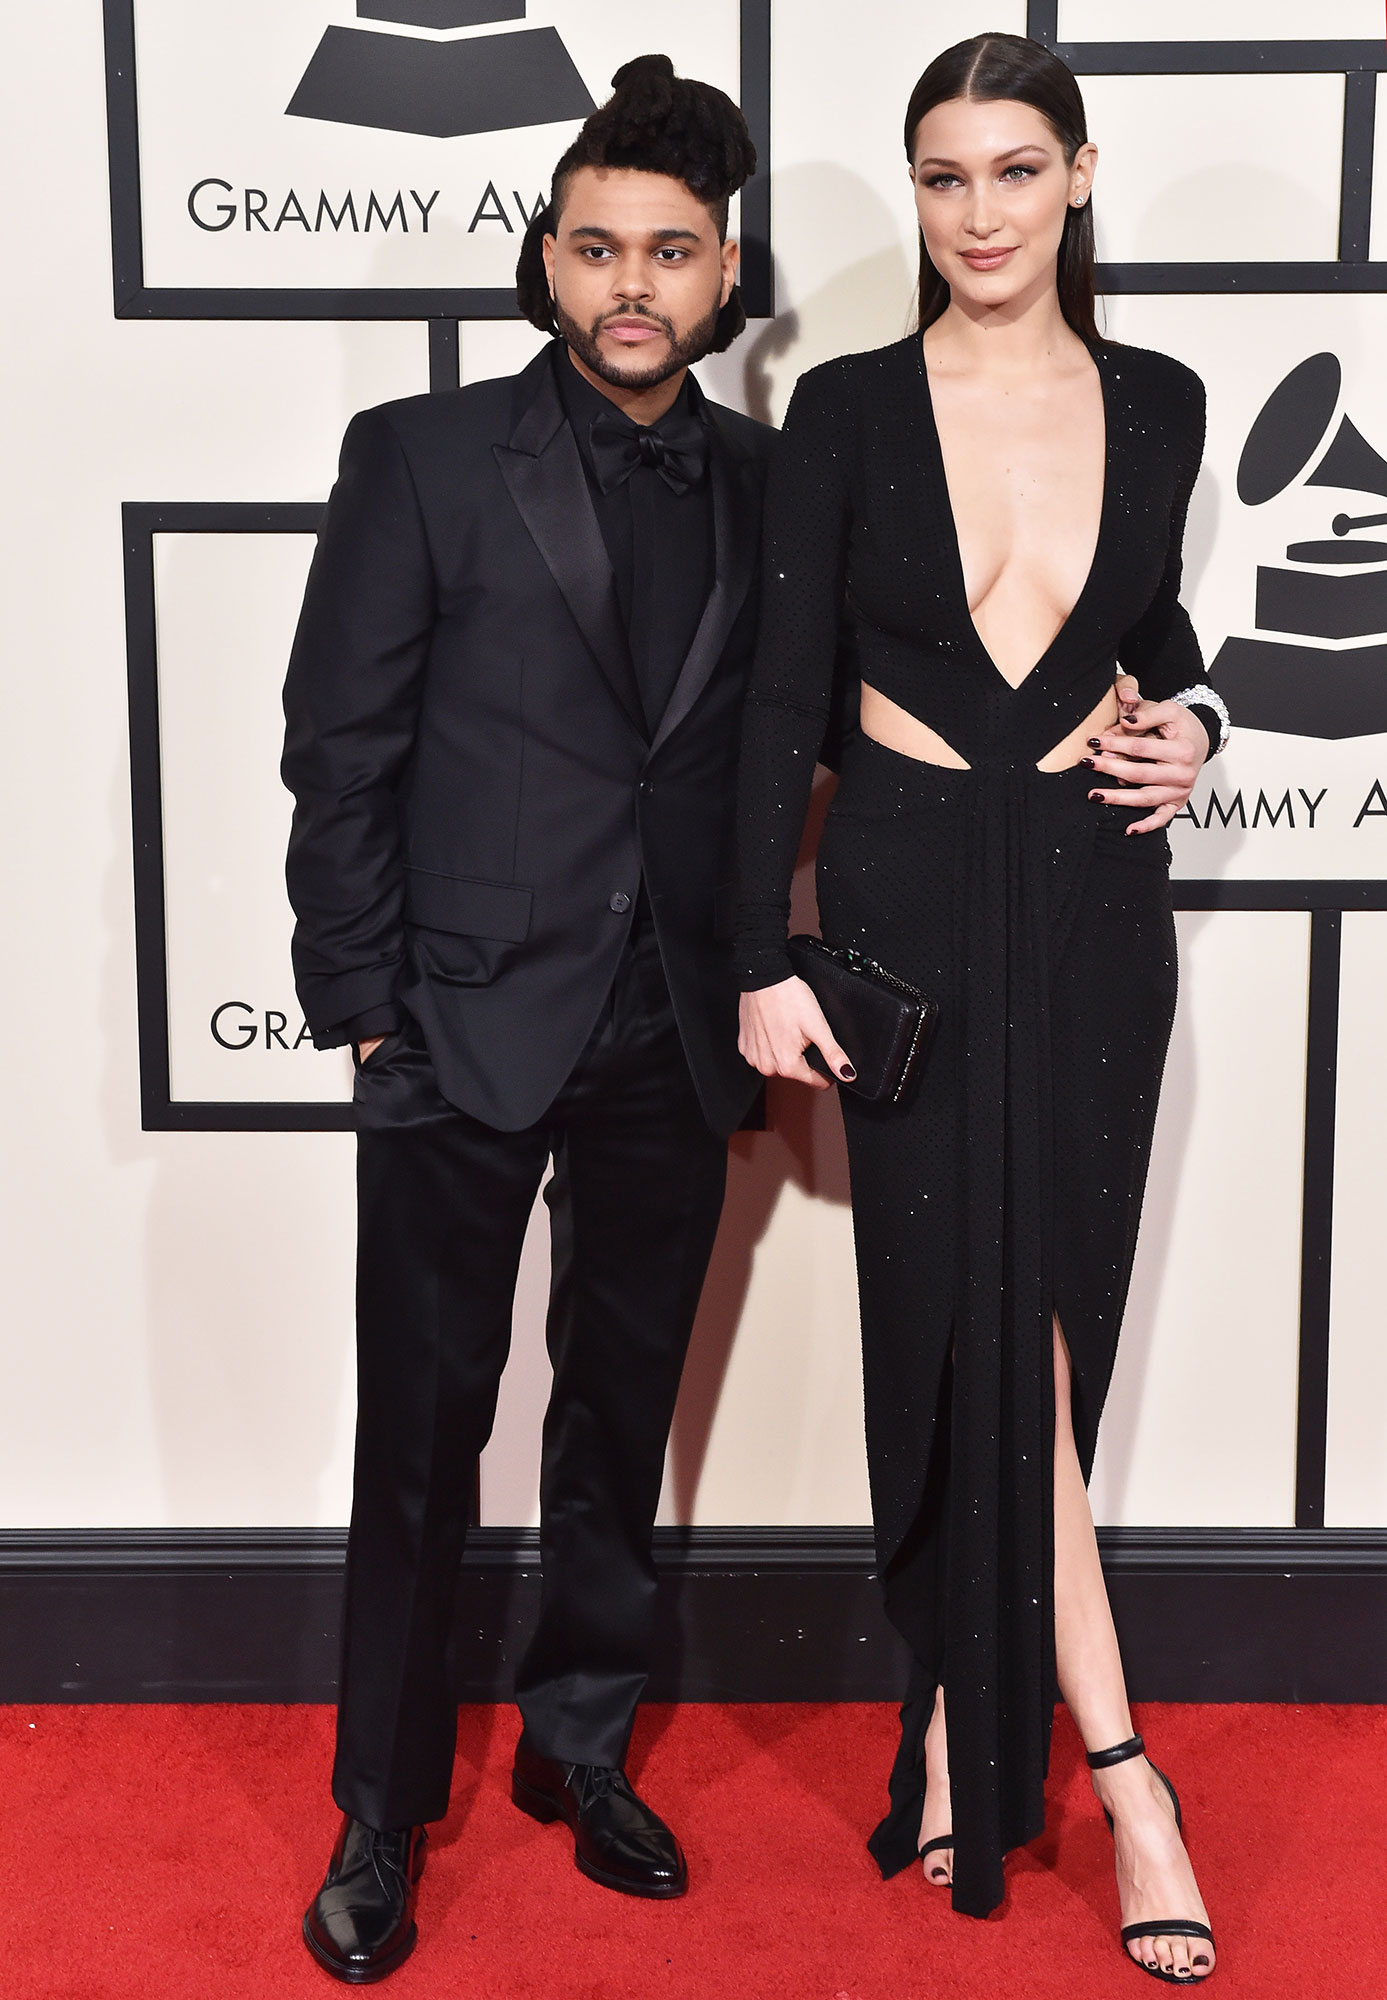 "Couples Who Made Their Red Carpet Debuts at an Awards Show - The model and The Weeknd (real name: Abel Makkonen Tesfaye ) heated up the red carpet at the 2016 Grammy Awards. The pair — who were dating for nine months at the time — looked fashionably in sync, with Hadid wearing an Alexandre Vauthier Haute Couture gown and the ""Starboy"" singer matching in a black suit."